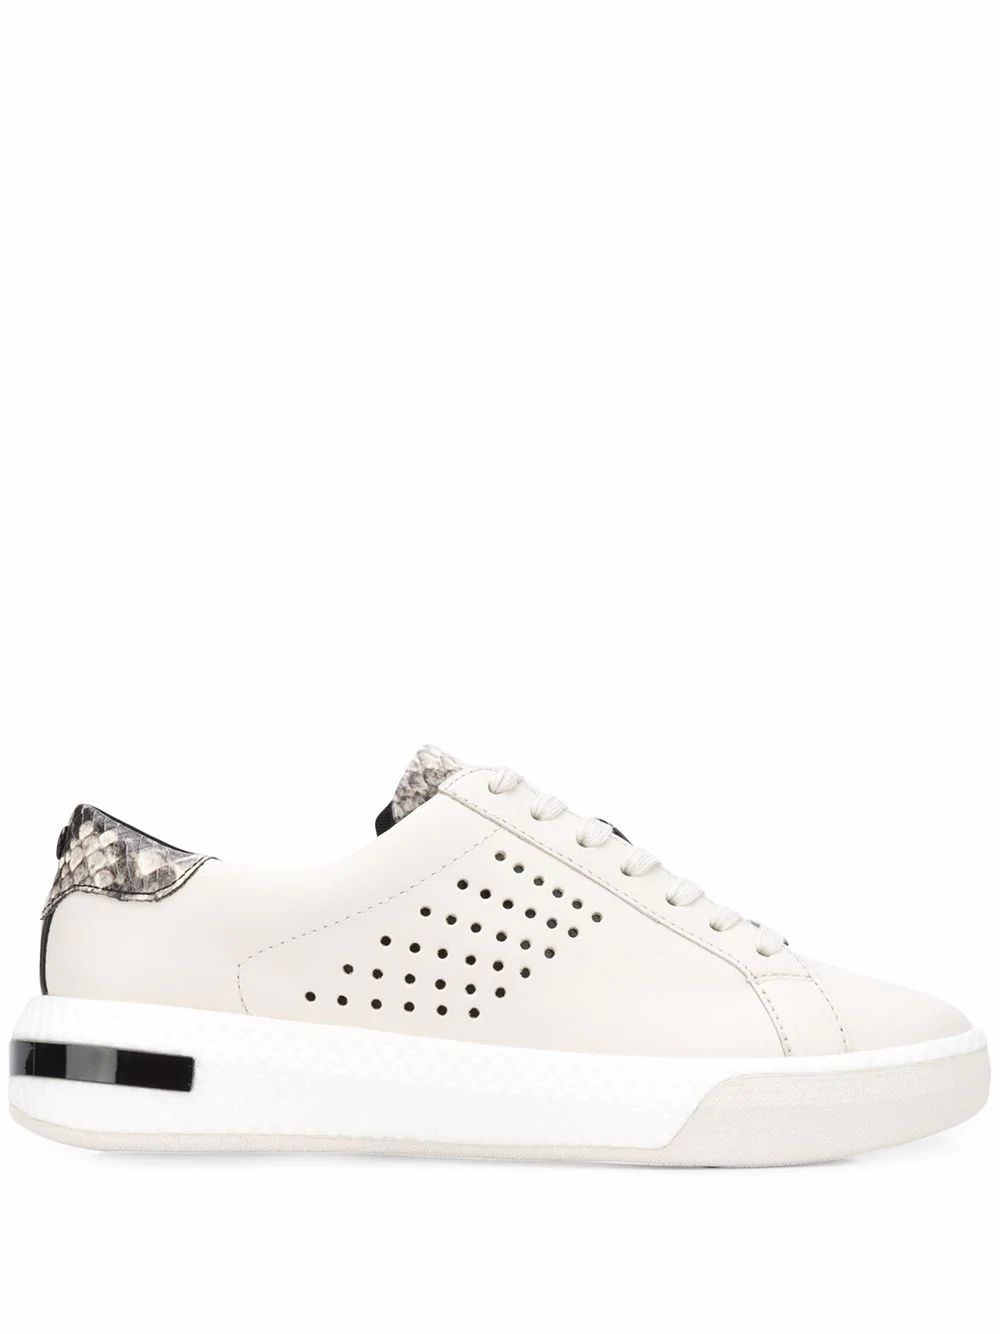 Michael Kors MICHAEL KORS WOMEN'S WHITE LEATHER SNEAKERS